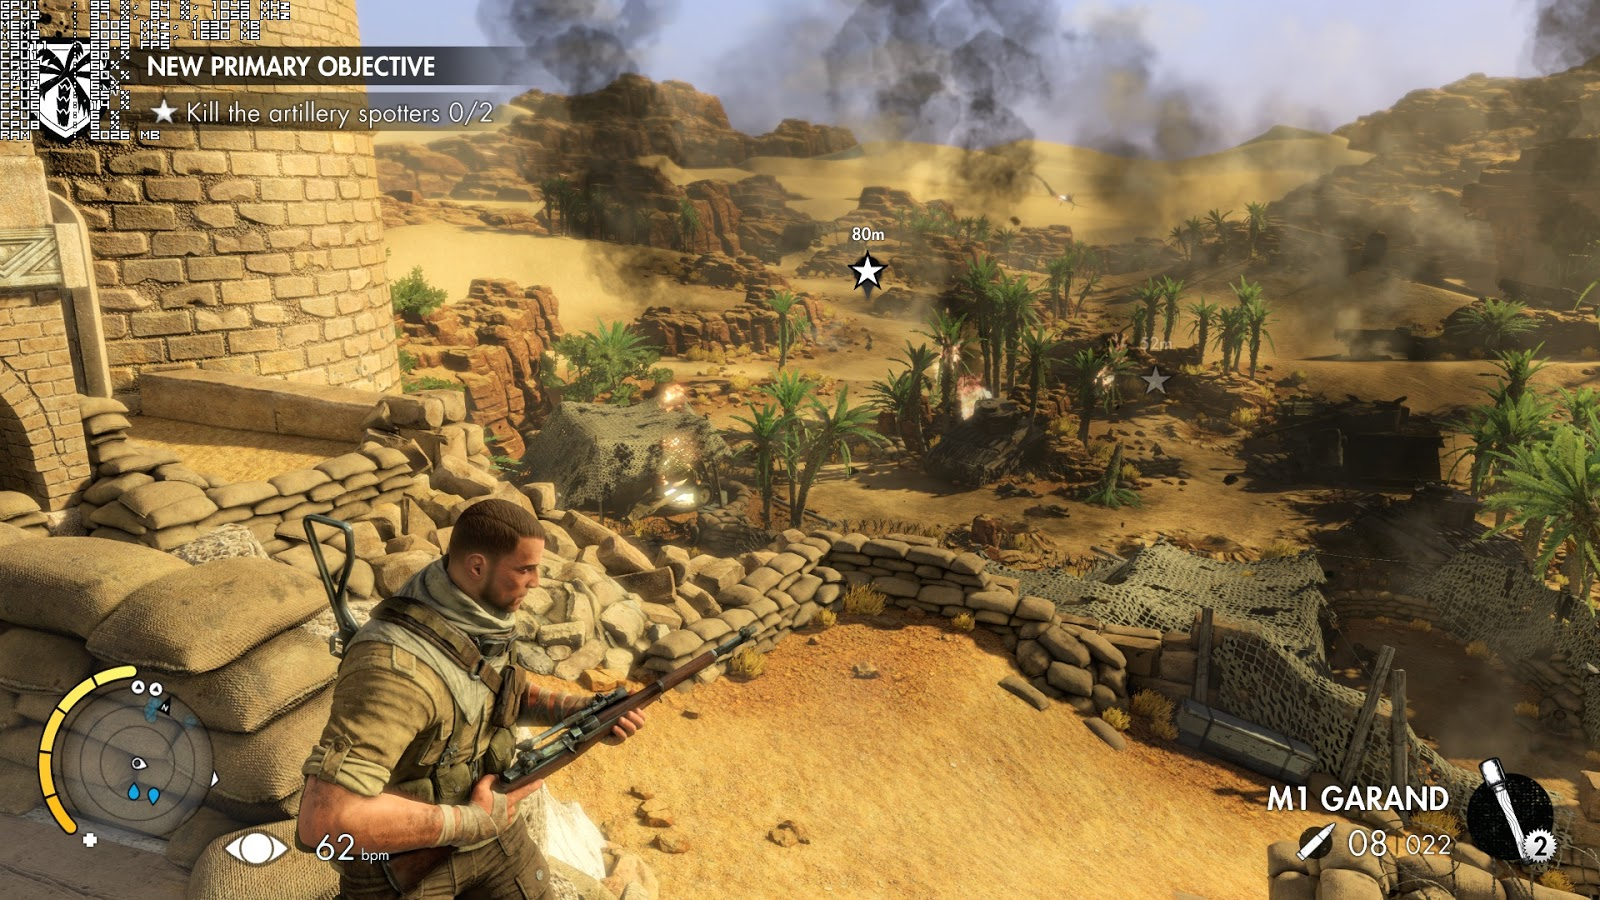 Sniper elite 3 pc and mac download for free   full game youtube.